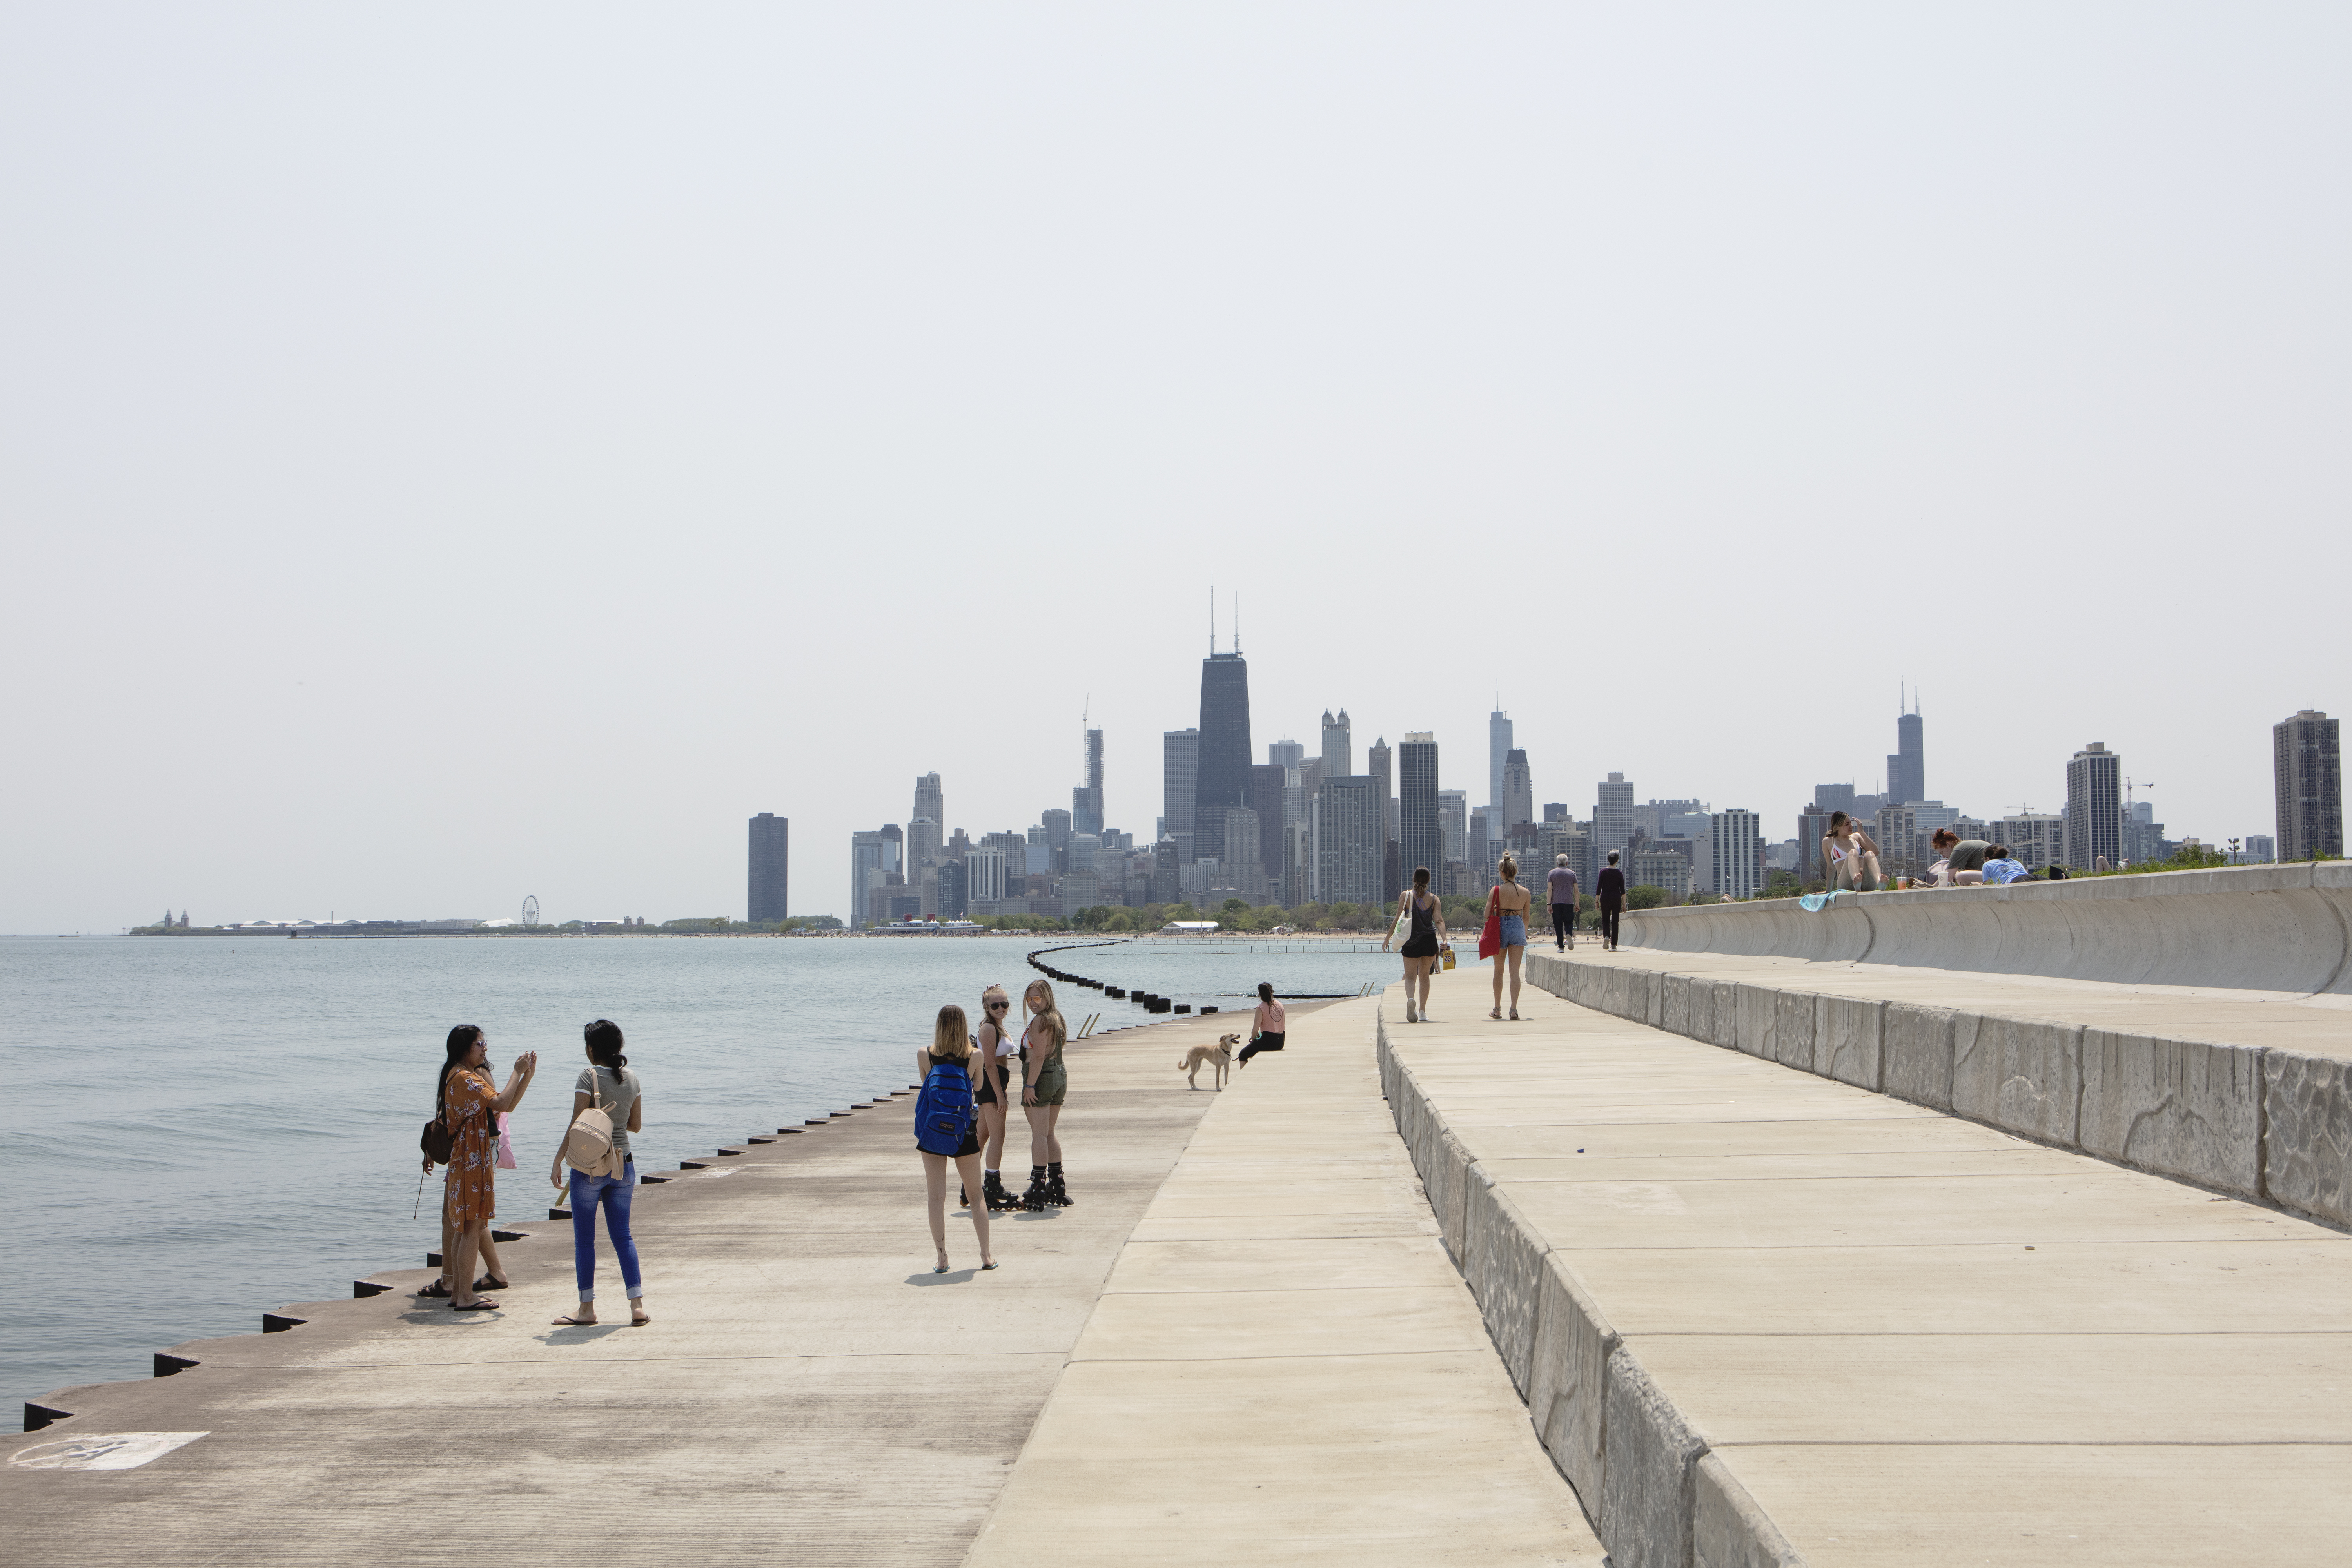 A tiered concrete breakwater curves around the edge of the a lake with small groups of people strolling in the sun with tall towers and buildings in the distance.